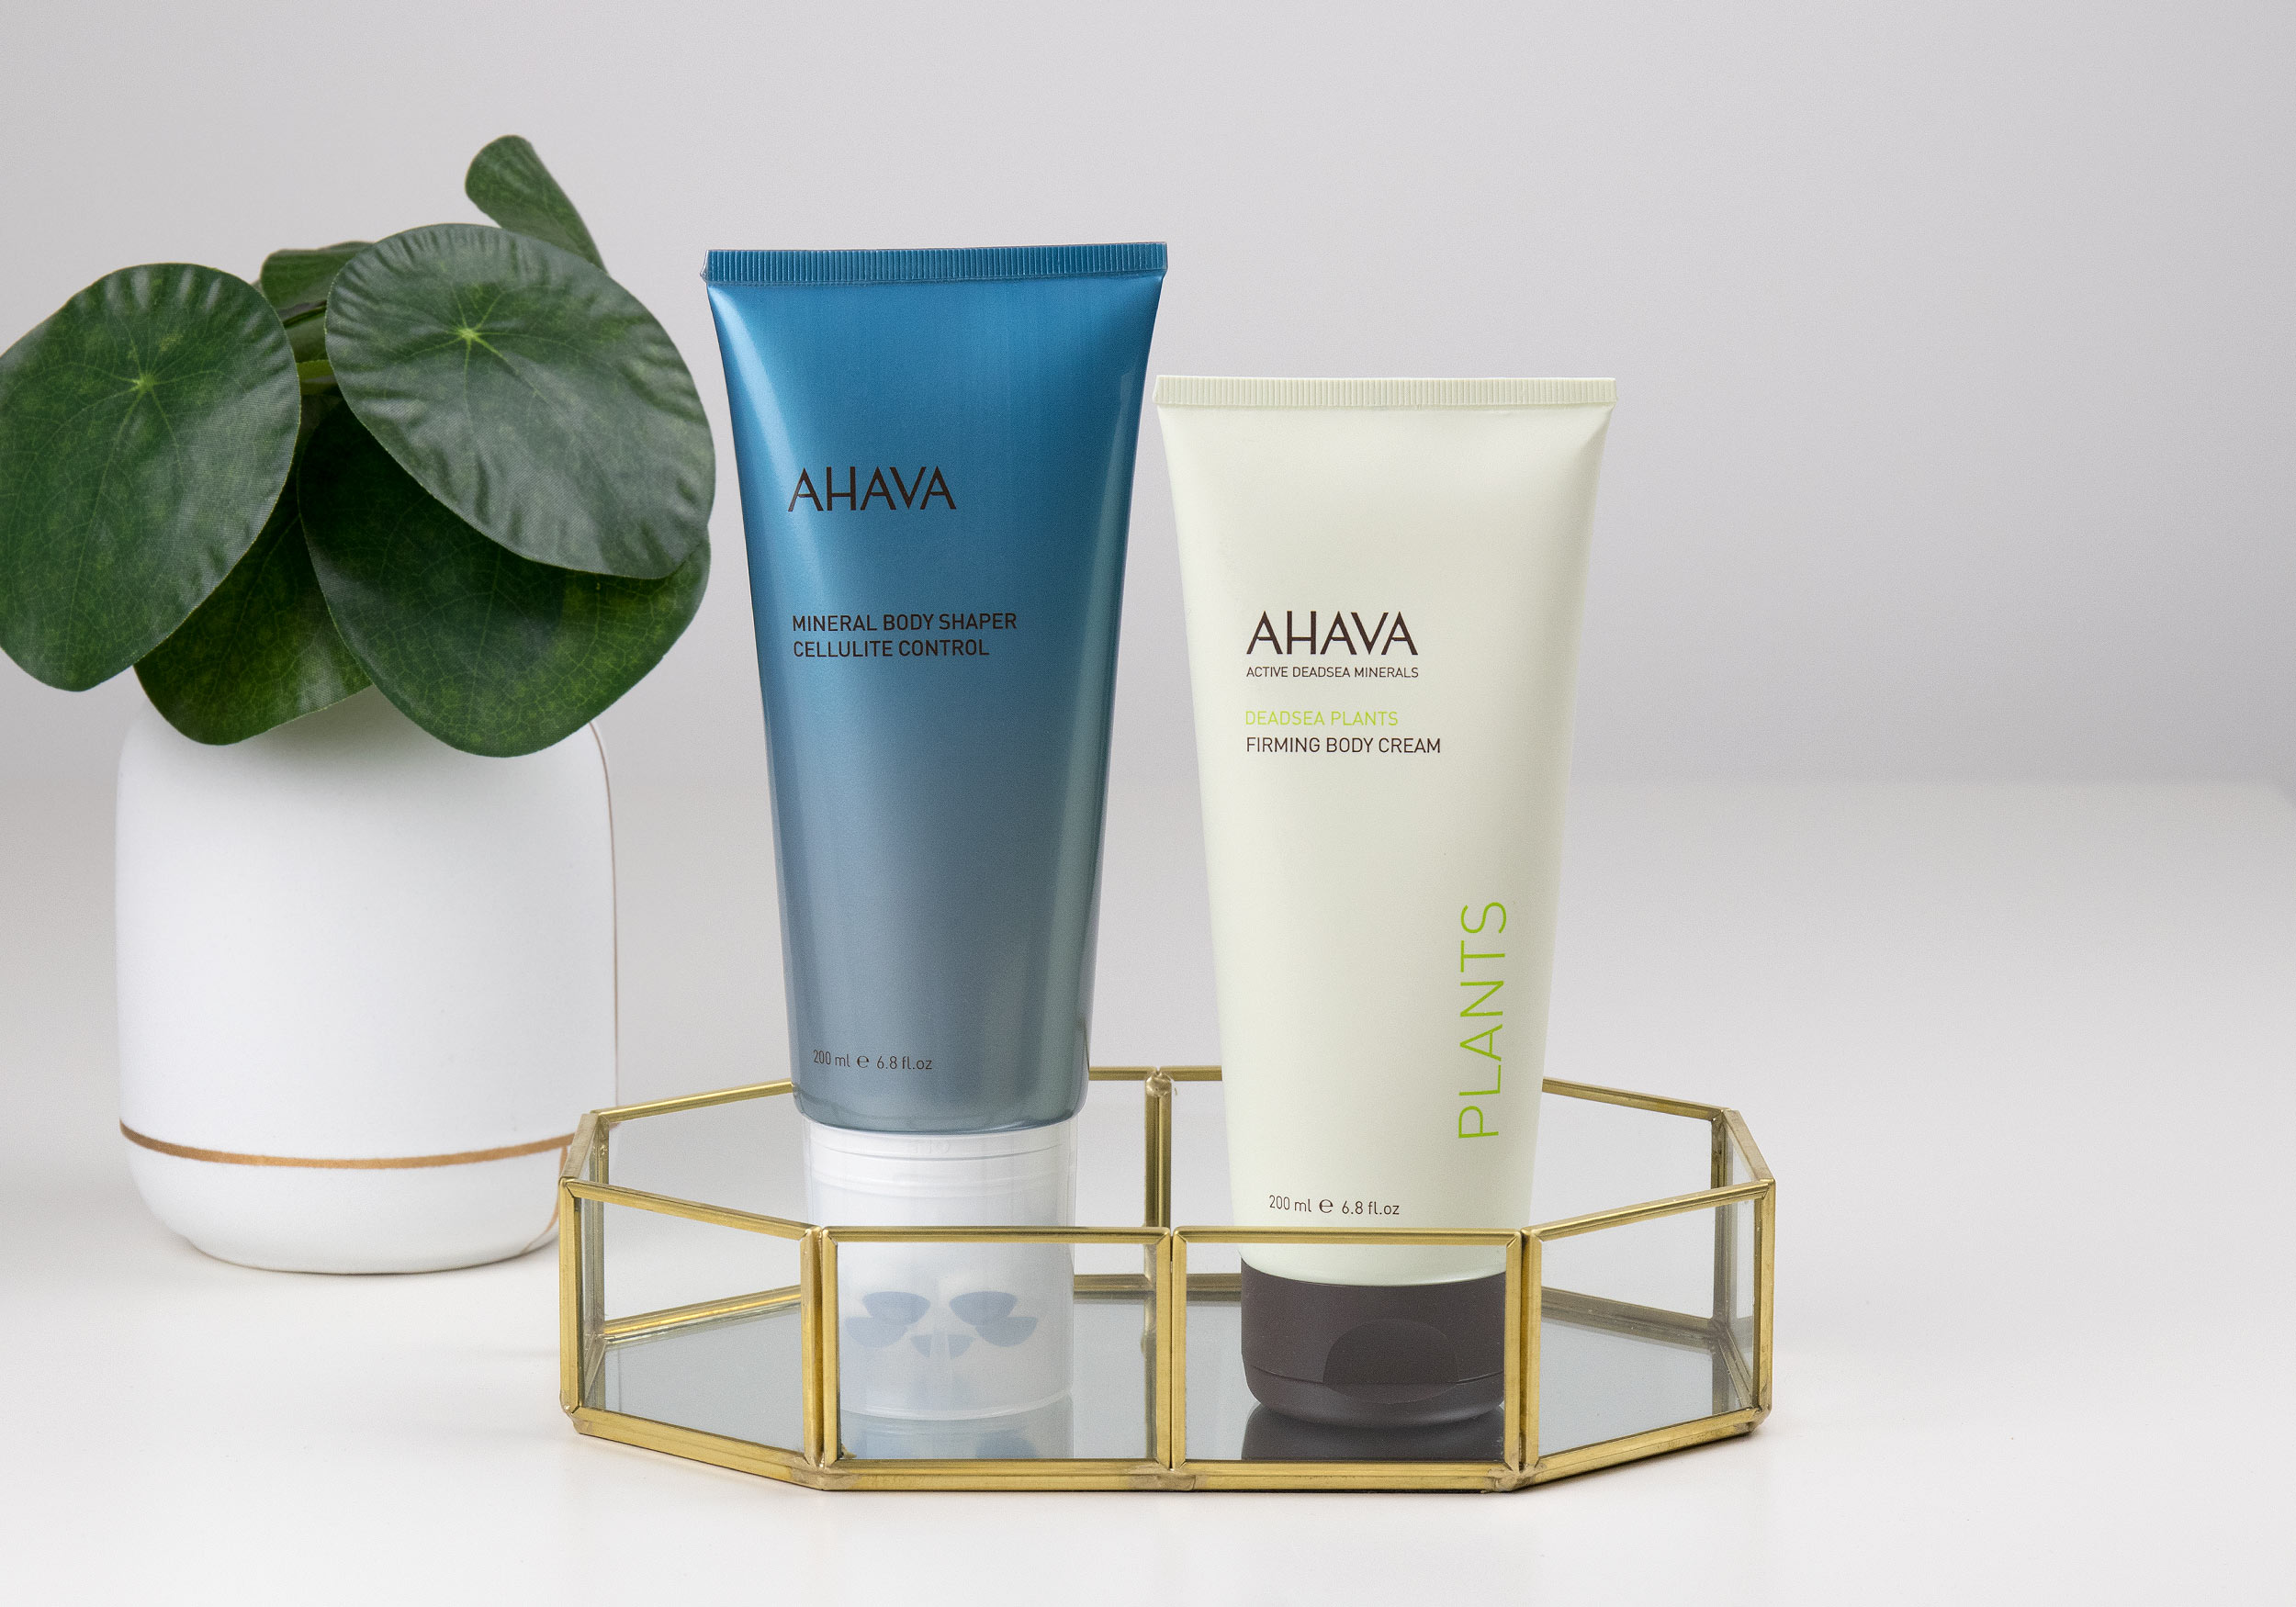 AHAVA Mineral Body Shaper & DEADSEA PLANTS Firming Body Cream